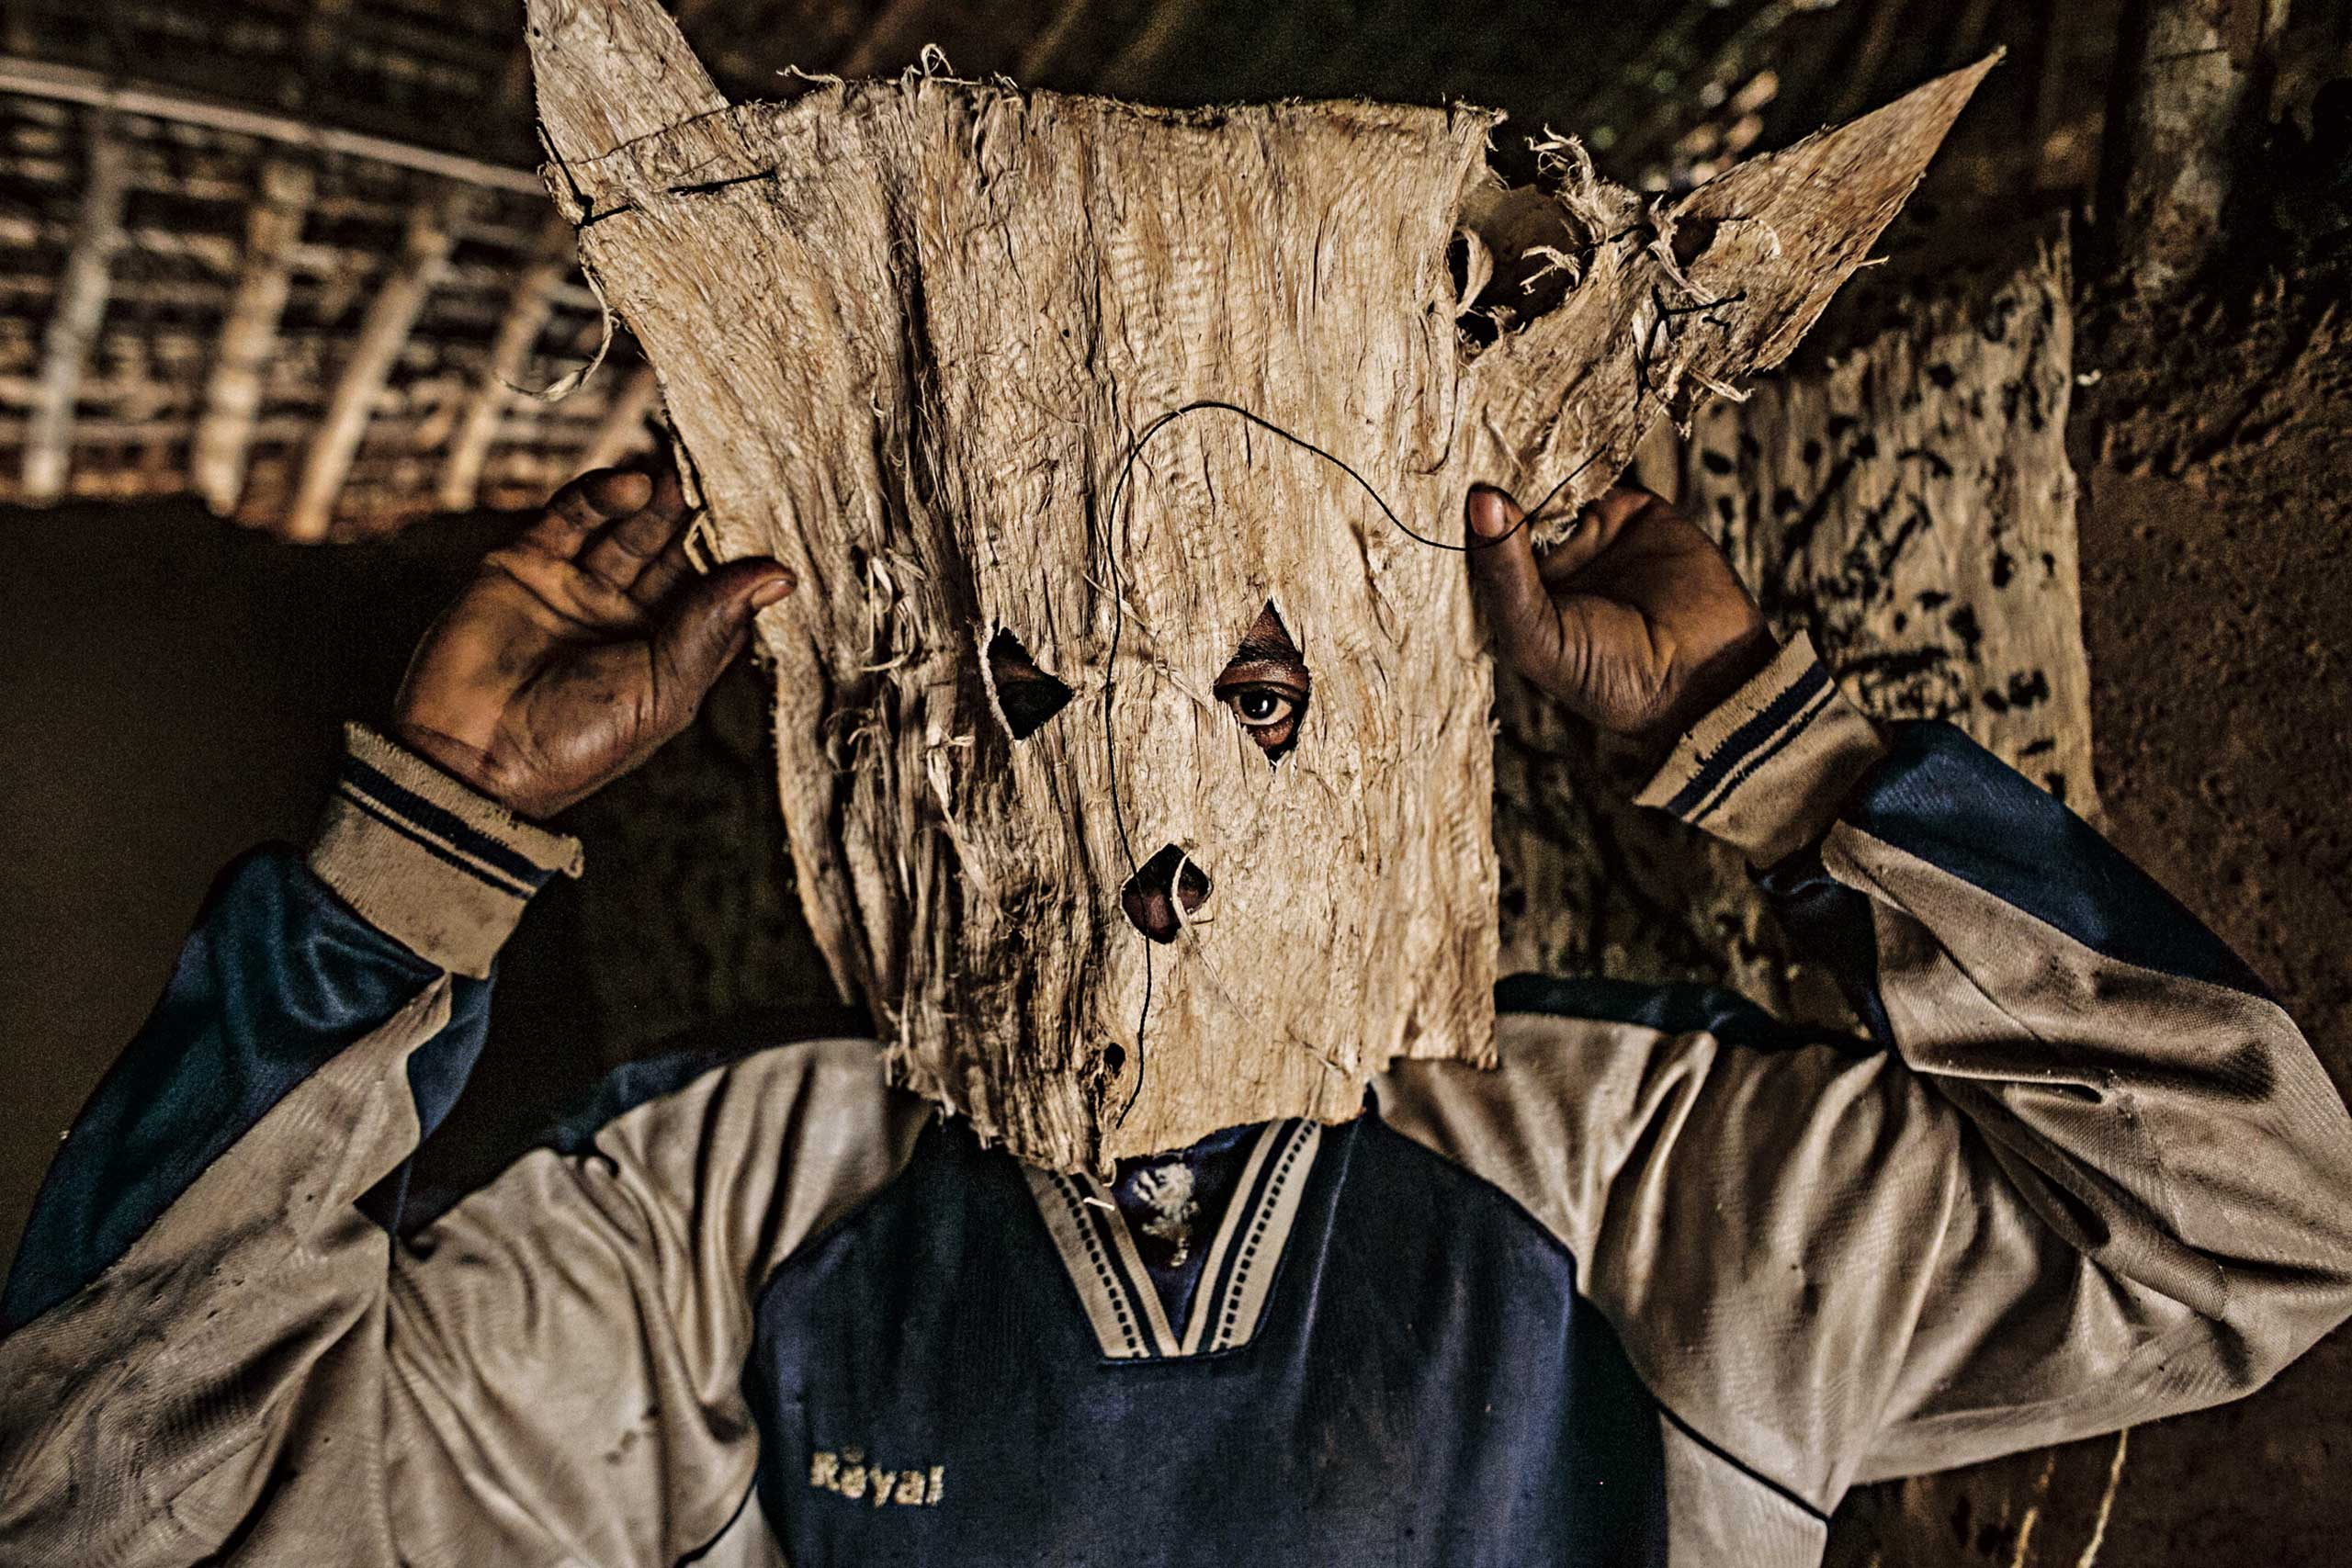 From the July issue of National Geographic magazine: Seeking the Source of Ebola                               A hunter from a small village in the Democratic Republic of the Congo (DRC) adjusts the mask that he'll wear while stalking game. The consumption of infected bush meat is one way Ebola virus passes to humans.